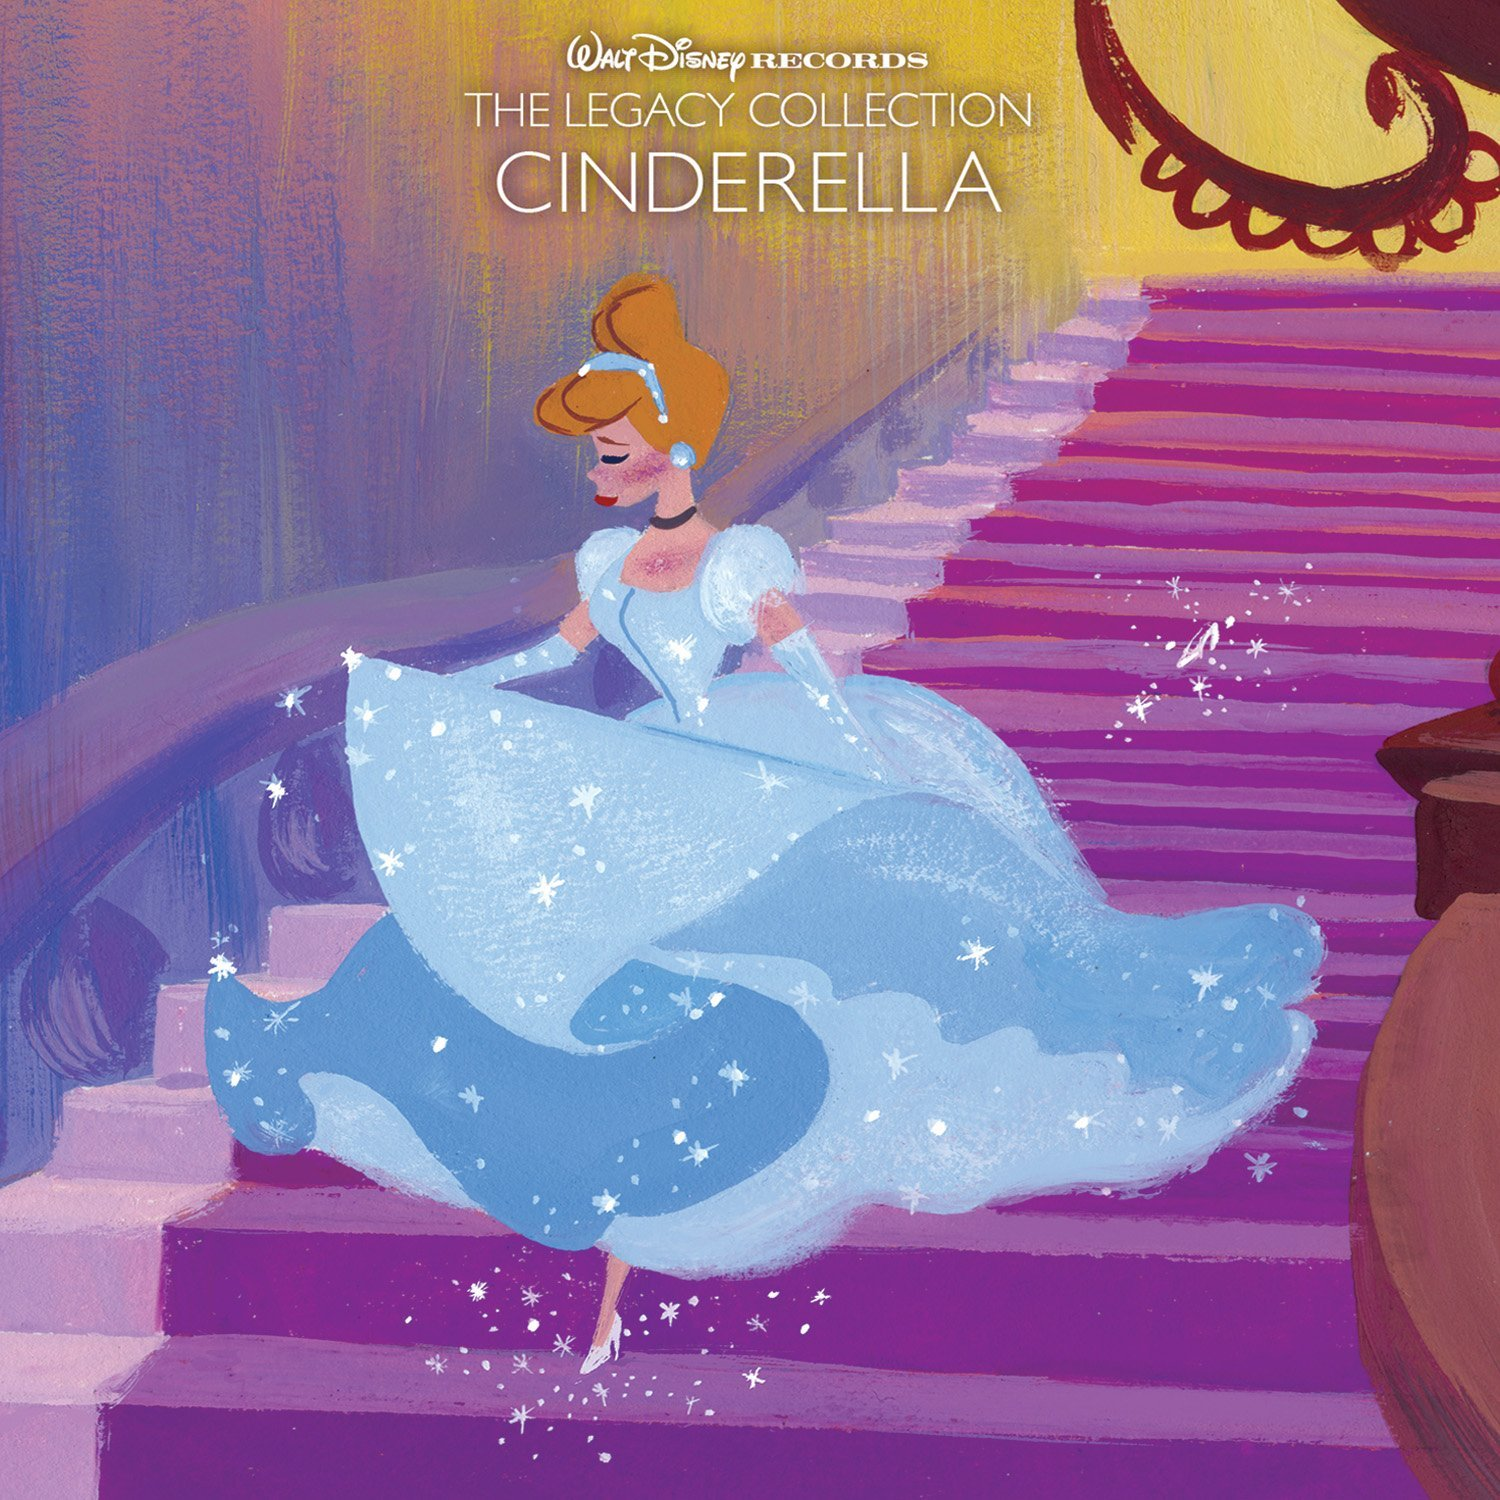 Cinderella: The Legacy Collection CD Coming Soon